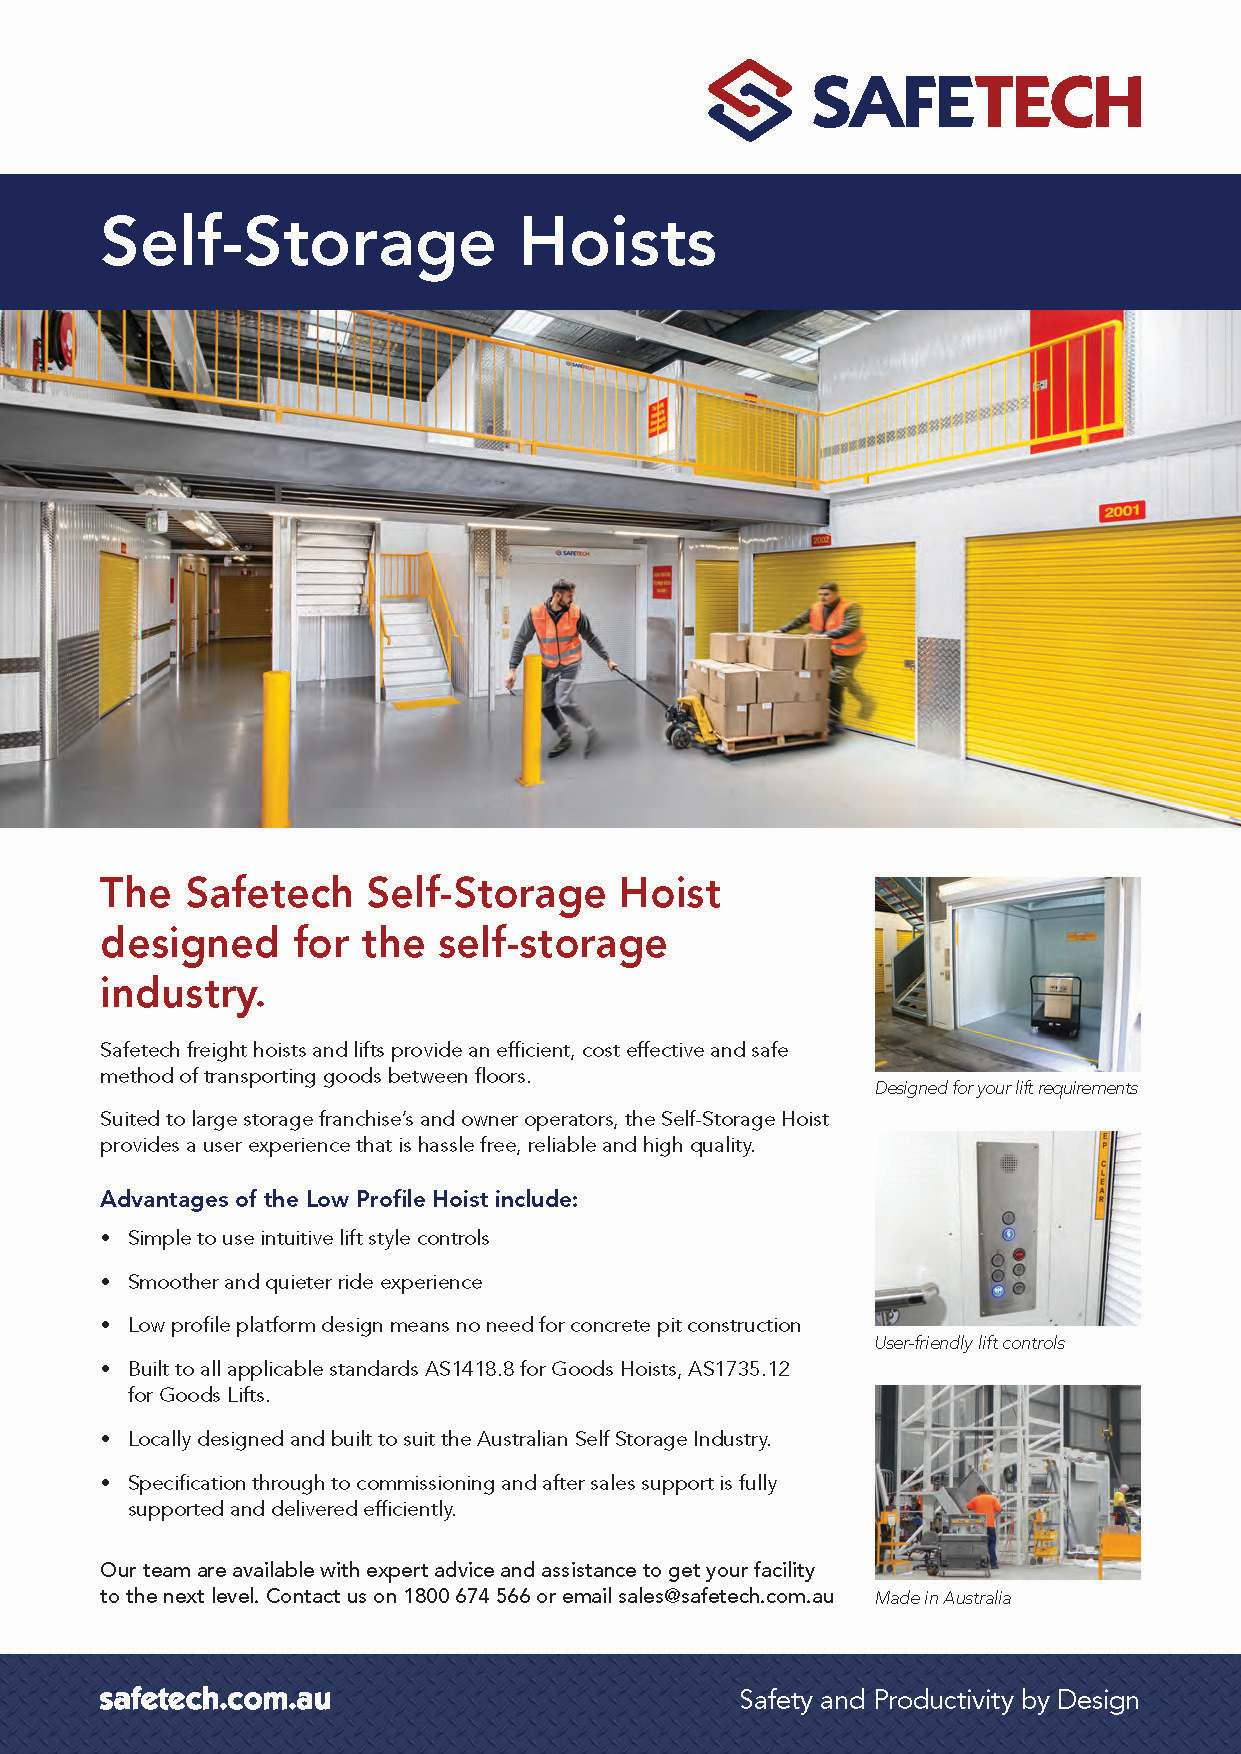 Safetech - Self Storage Hoist Flyer 2016_Page_1